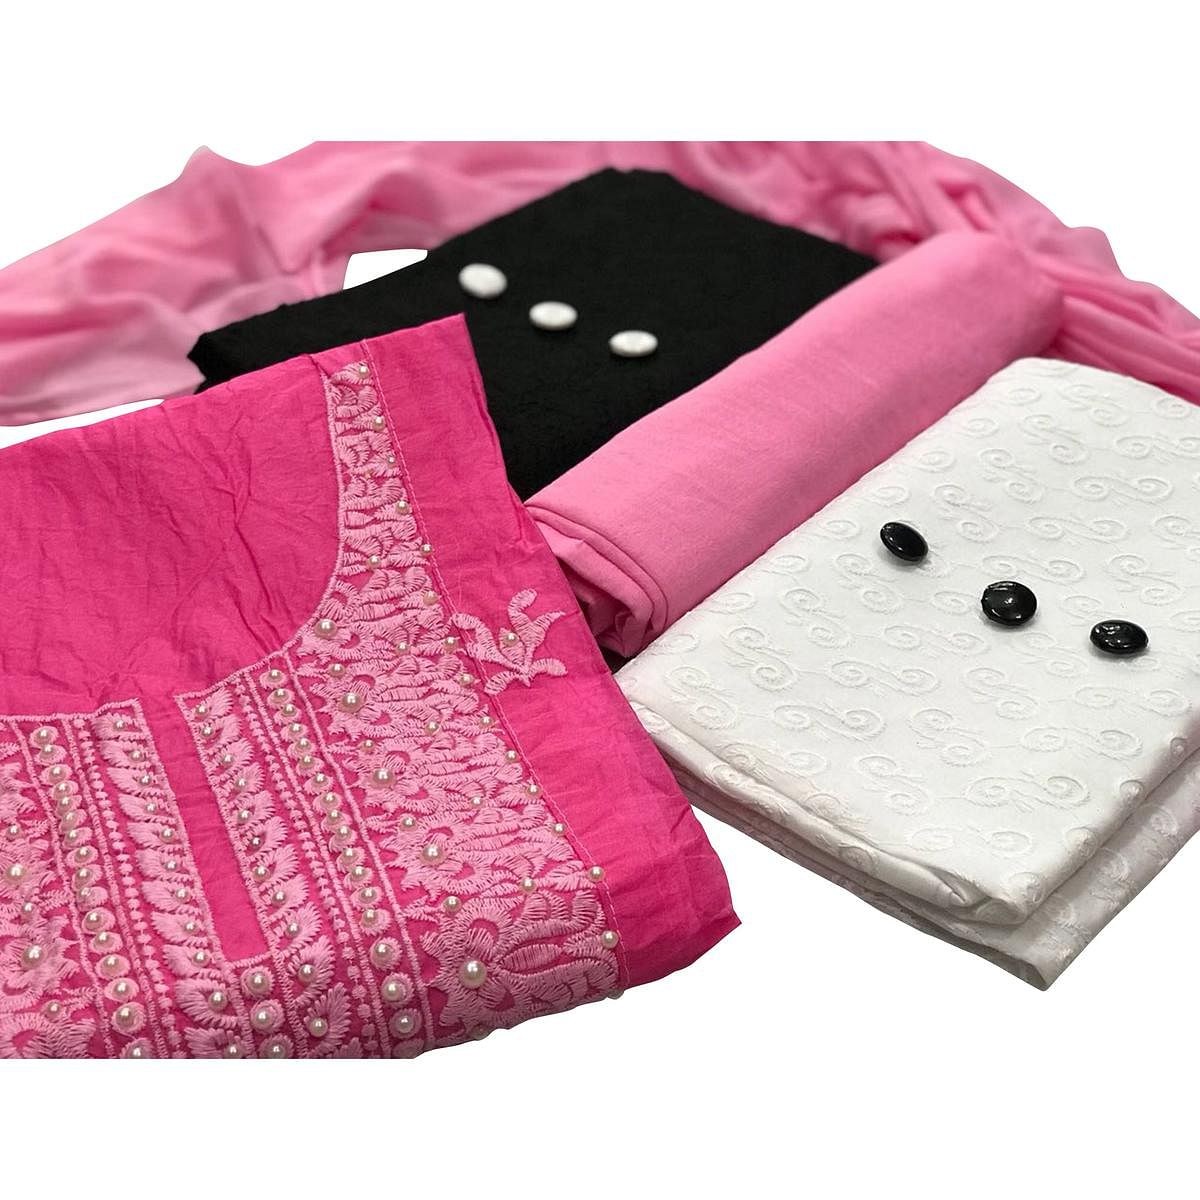 Modal-Cotton Dress Material : Pack Of 3 Tops (Pink-Black-White) With 1 Bottom & Dupatta